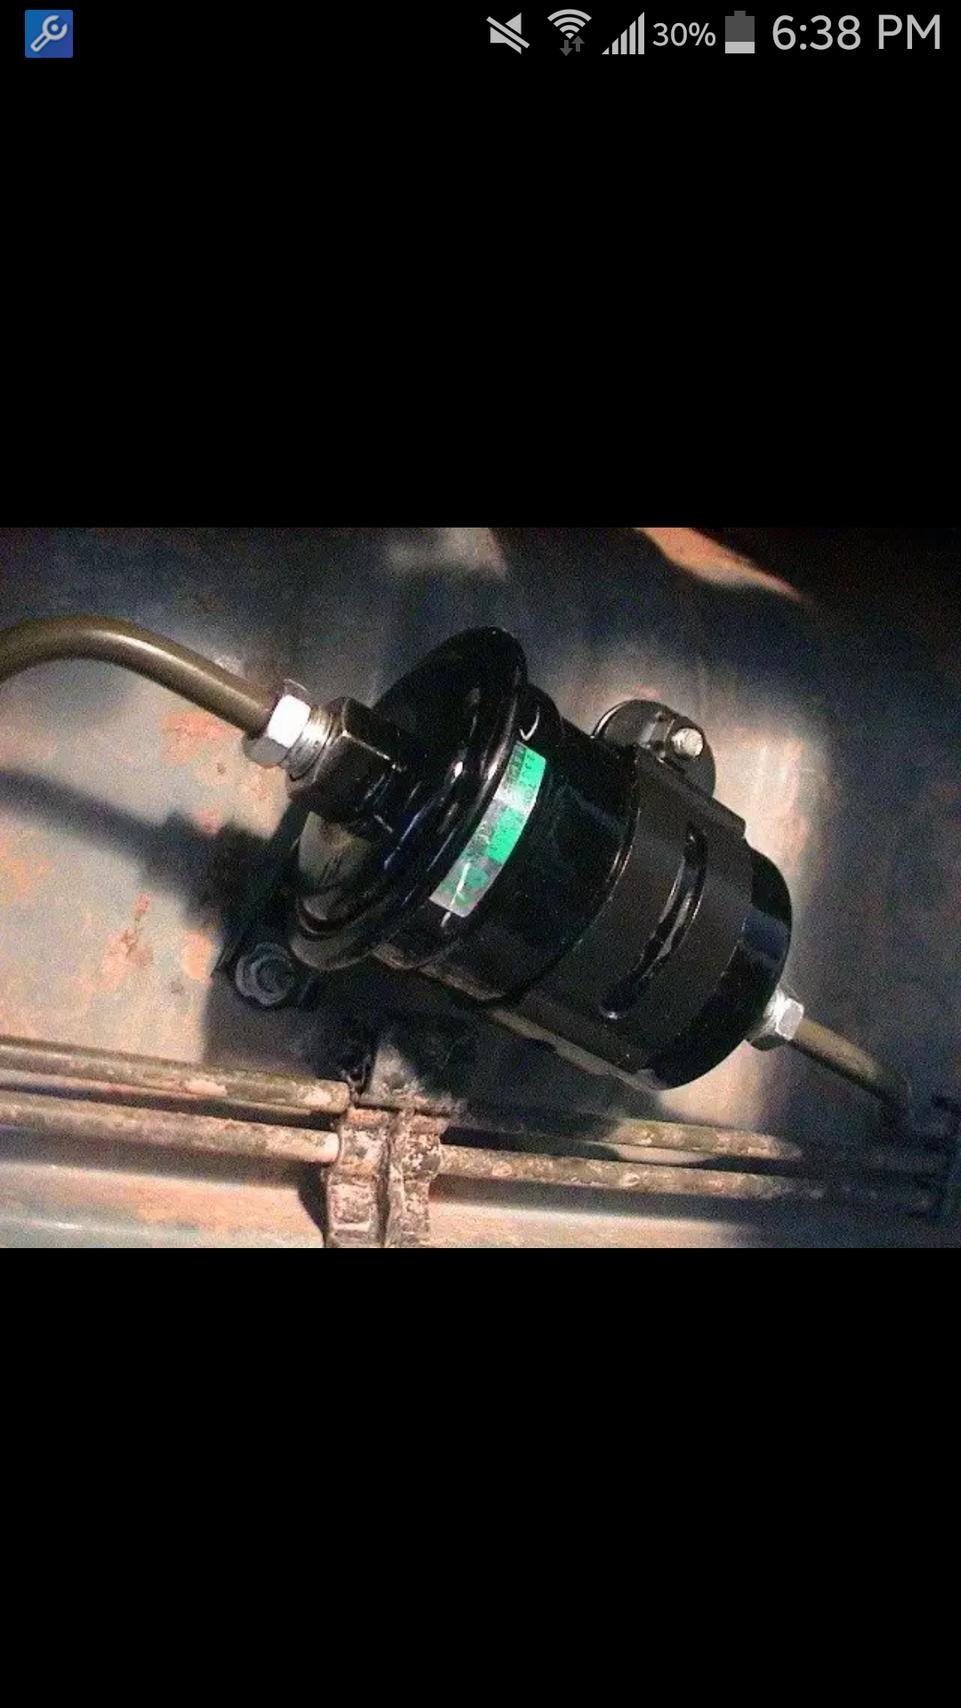 hight resolution of  changed fuel filter and now it s leaking like crazy screenshot 2017 09 03